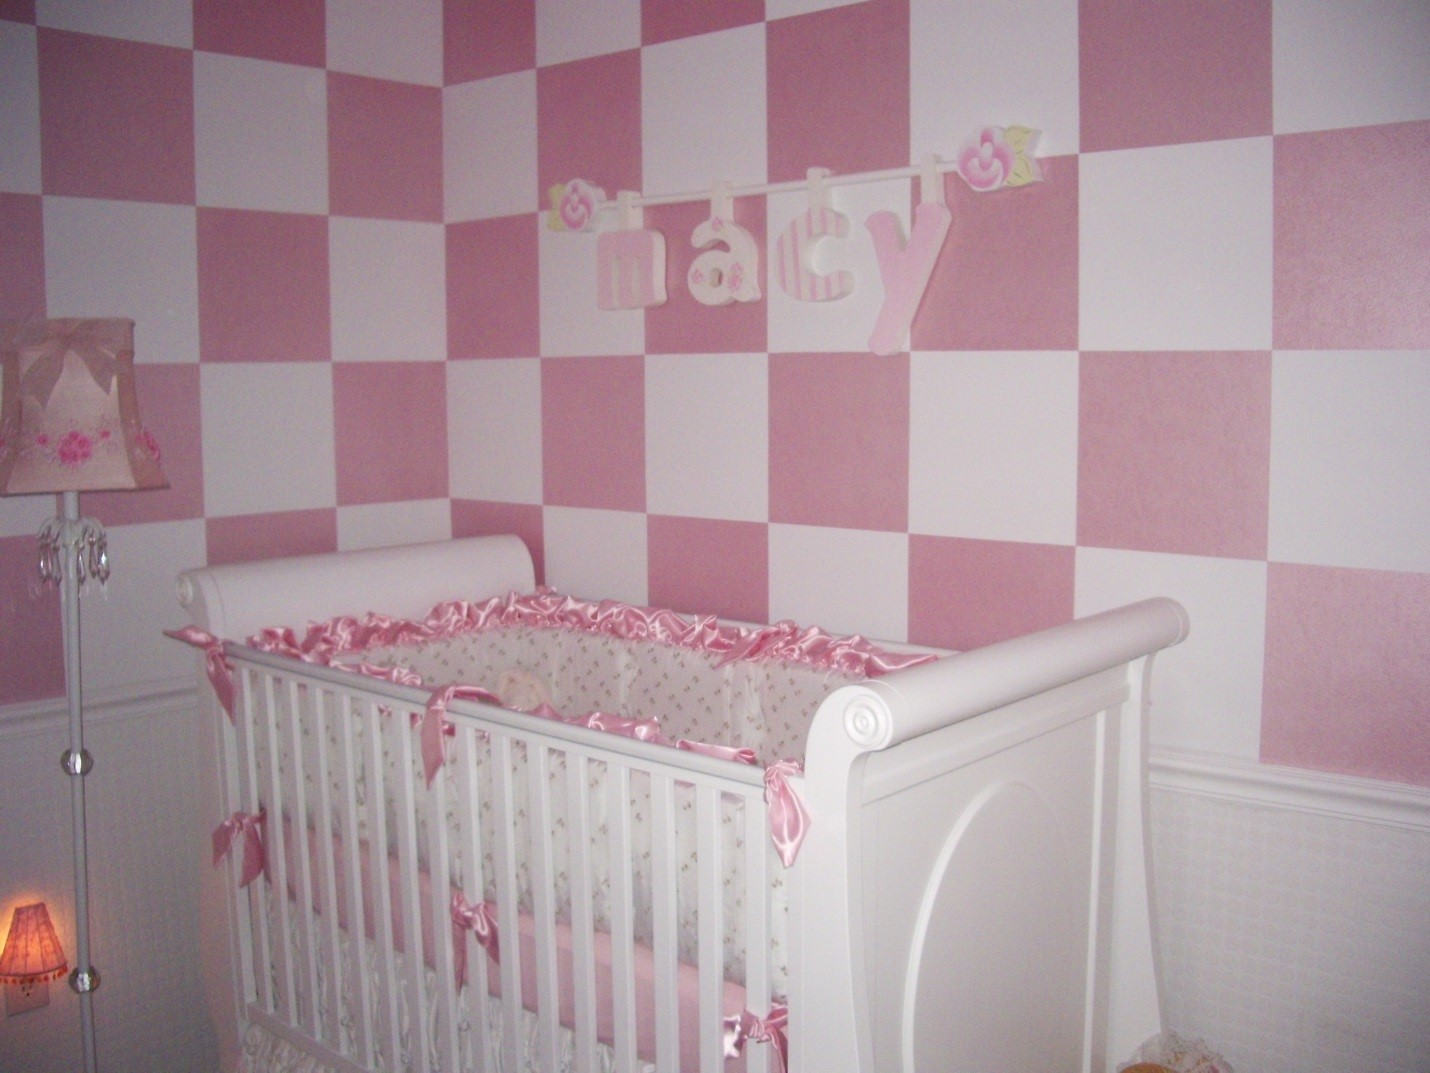 Macy's Nursery is painted in pearlized pink checkerboard